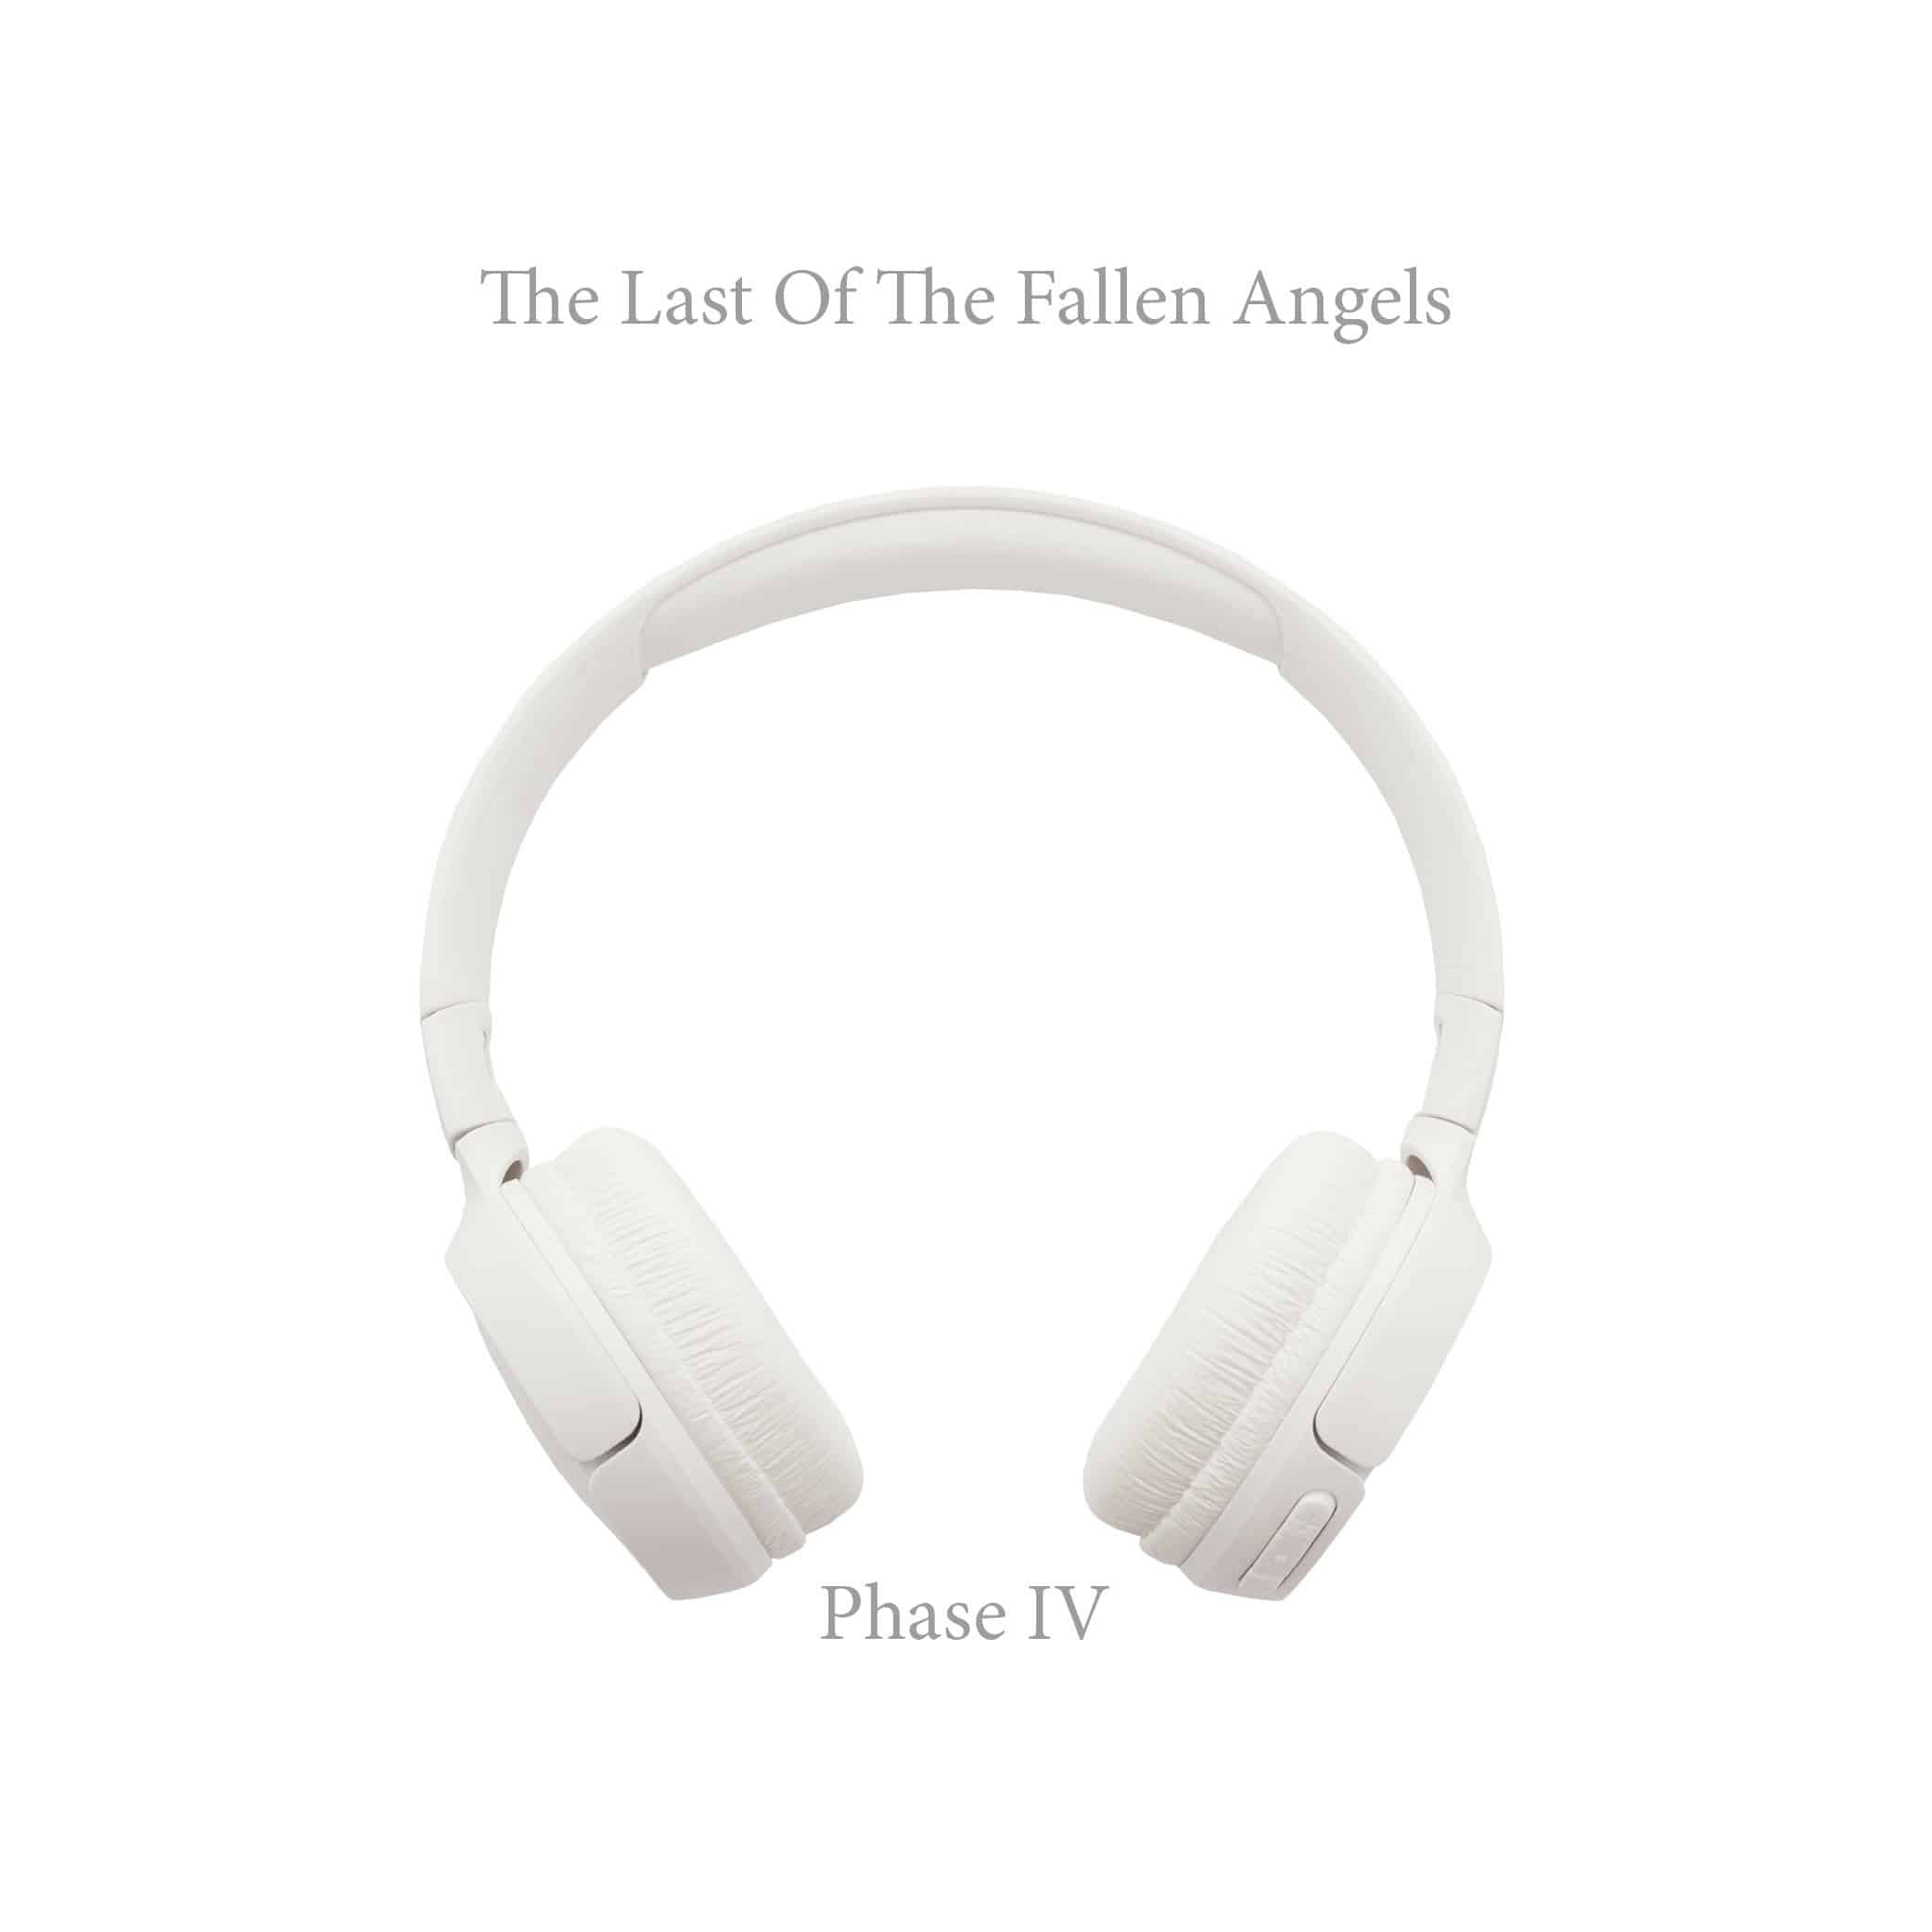 The Last of the Fallen Angels